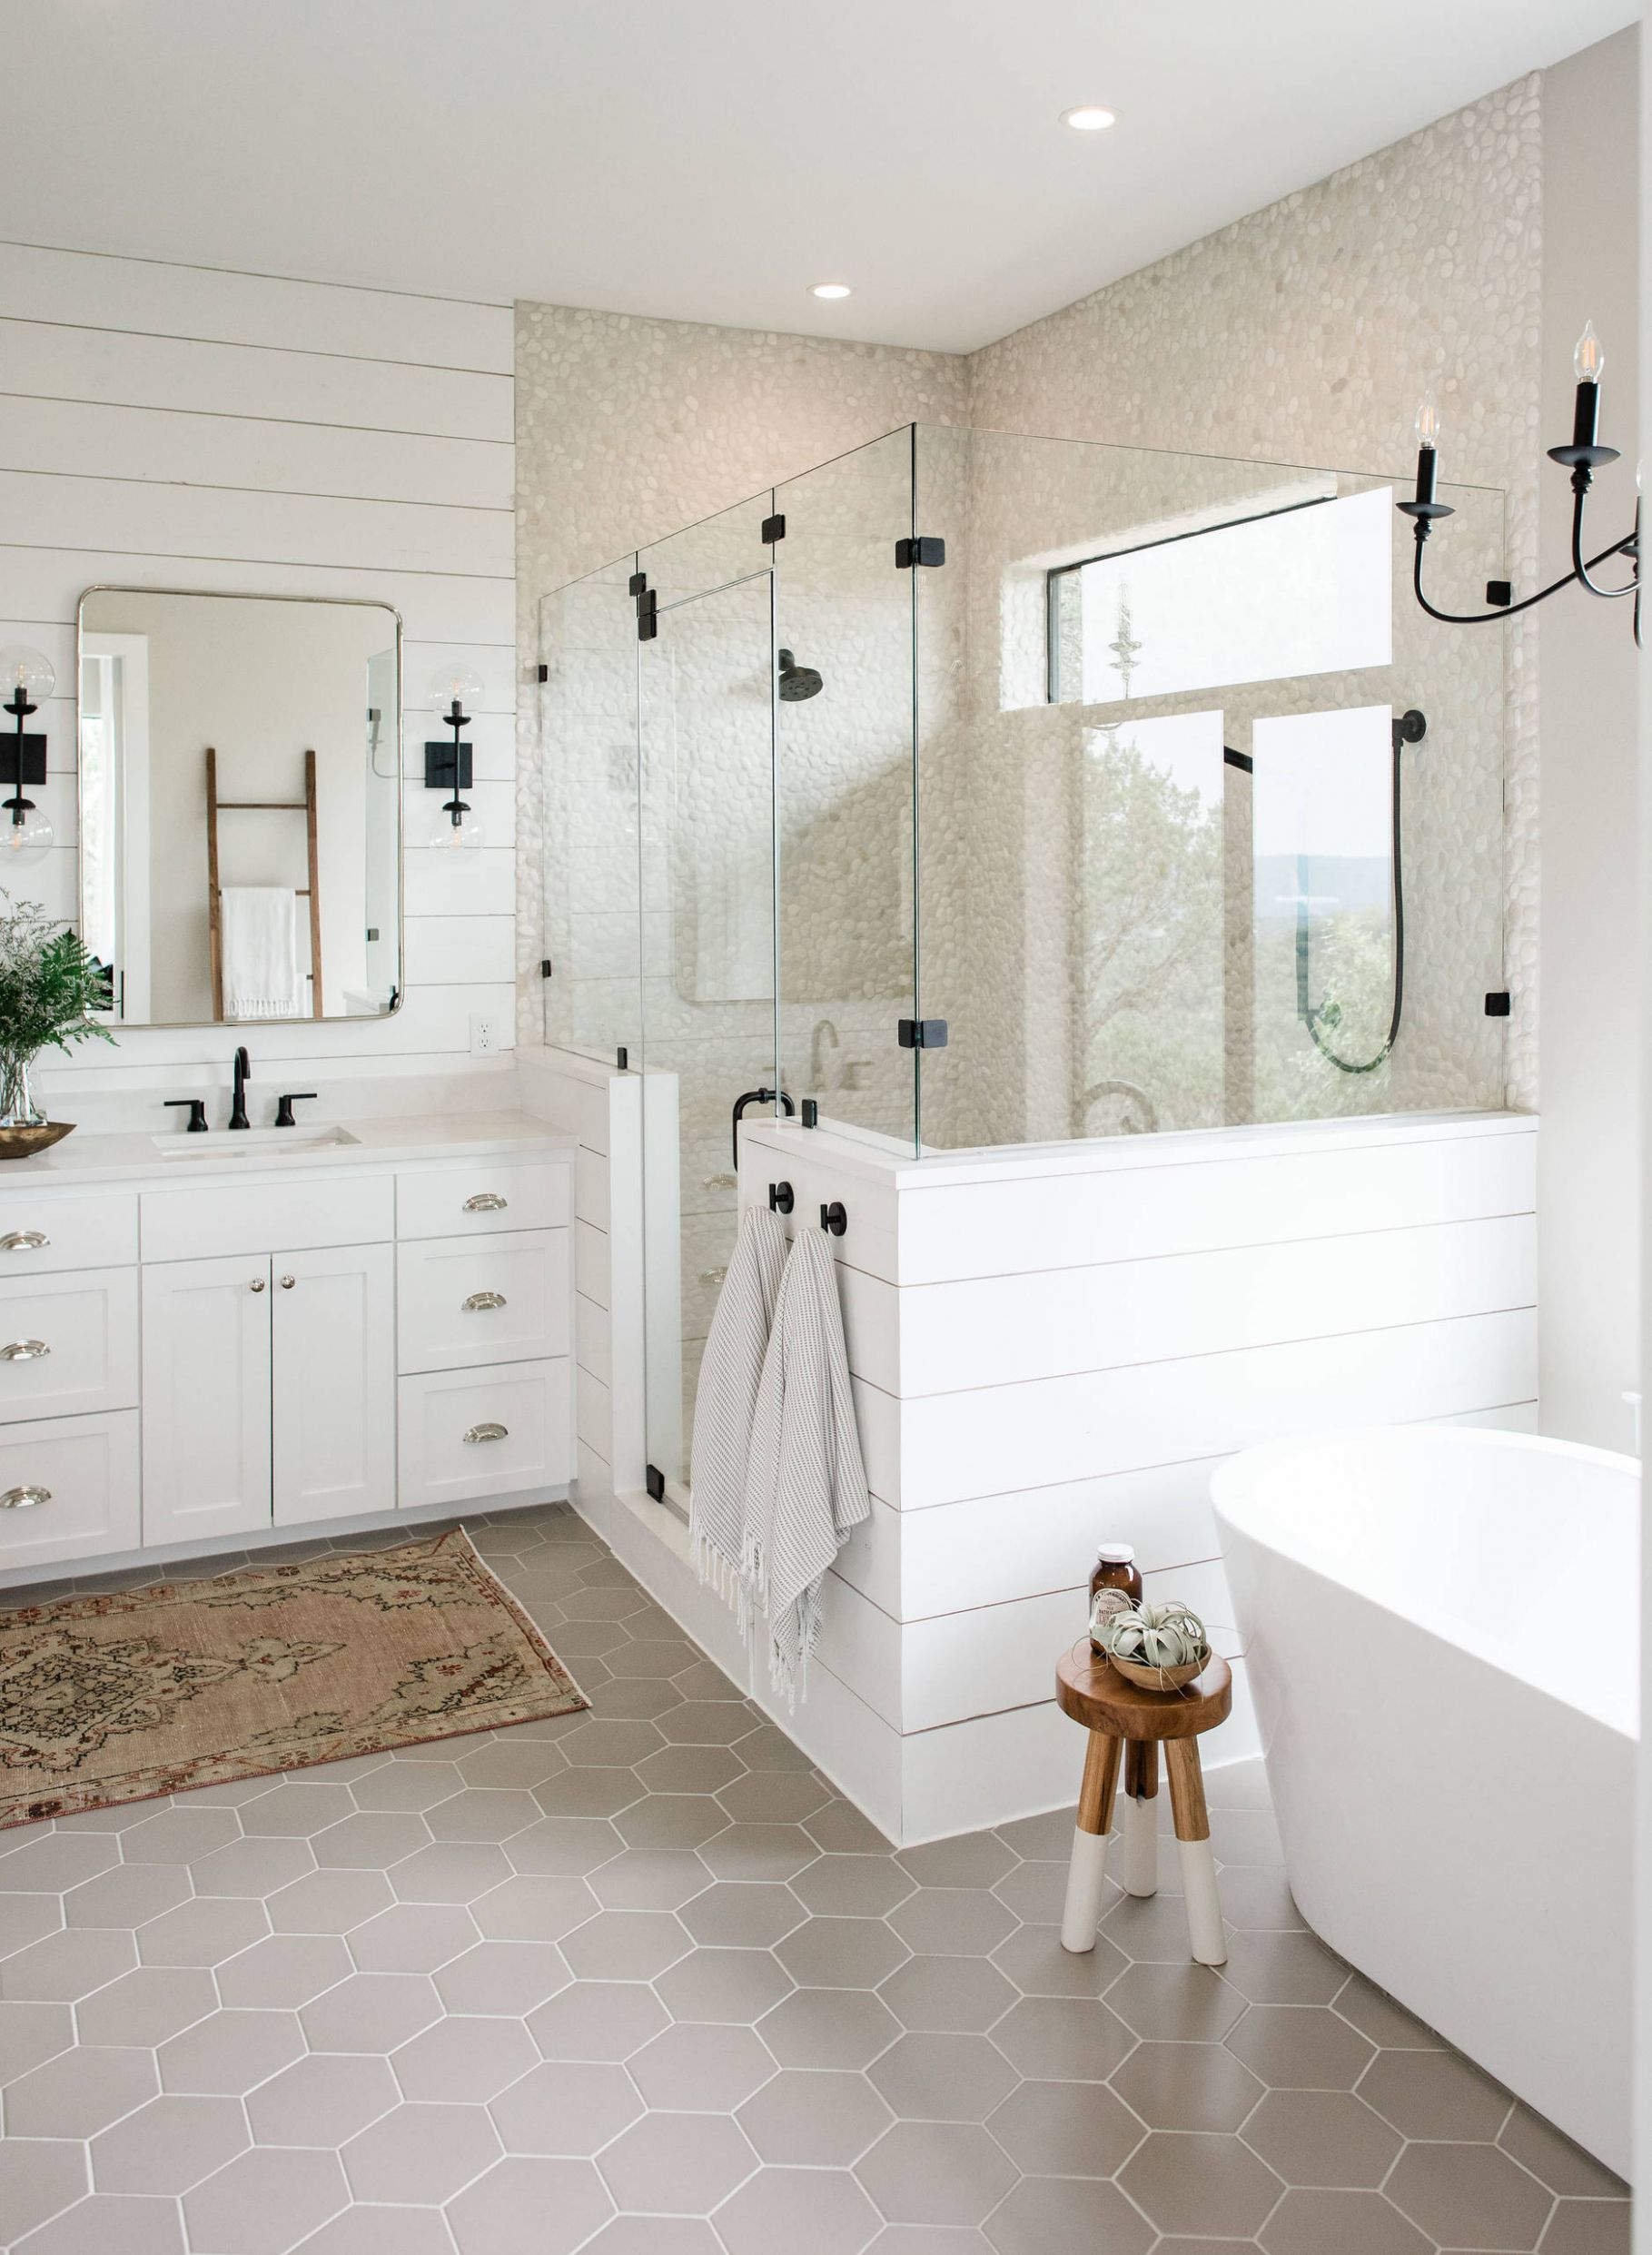 11 Life Changing Large Bathroom Remodel Ideas | Houzz